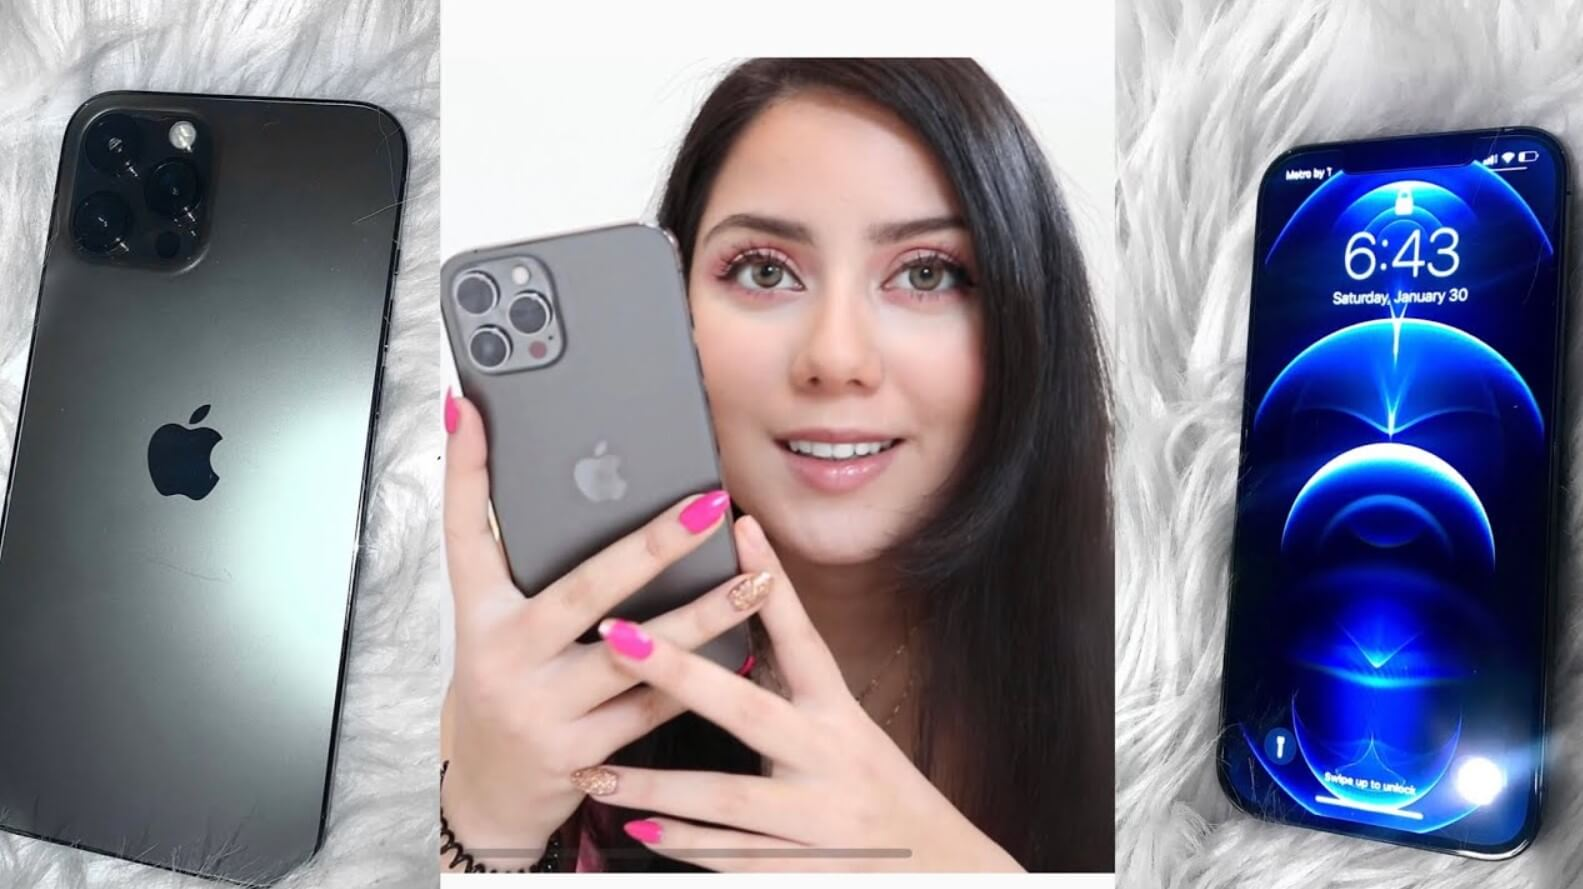 Iphone 12 Pro Max With Girl